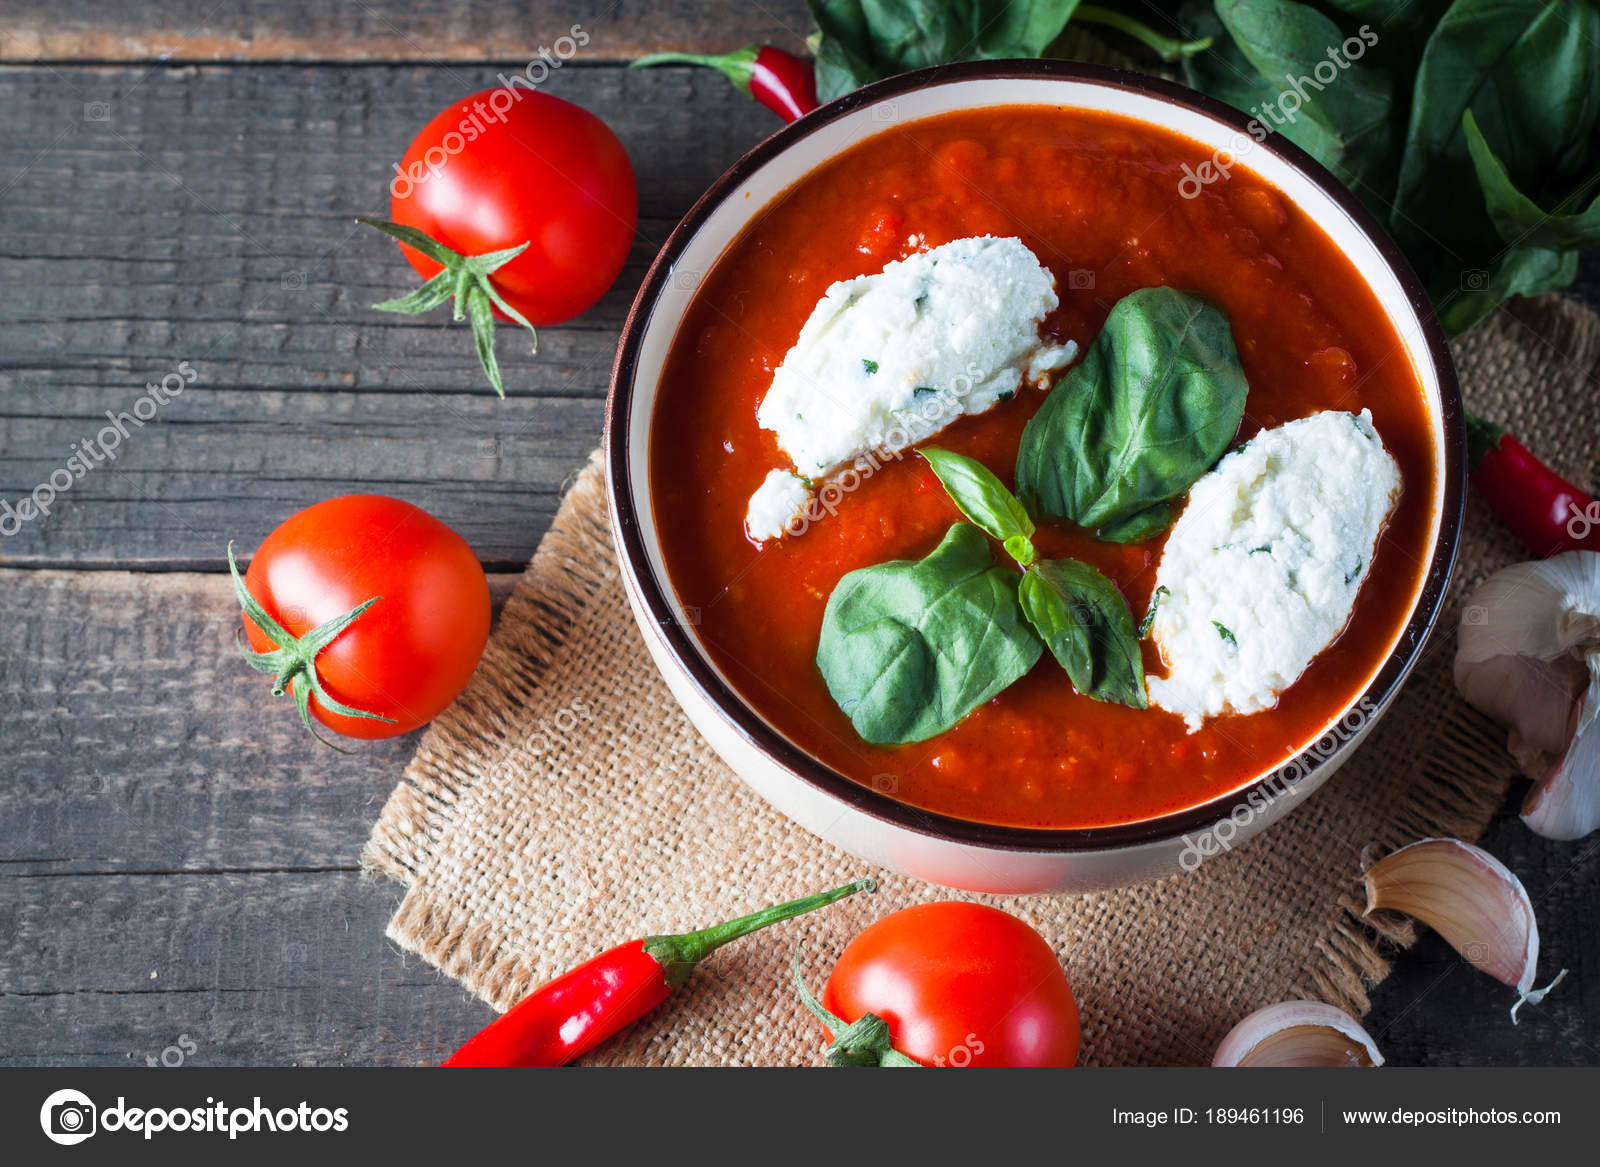 How To Make Tomato Soup From Tomato Sauce  can i use tomato soup instead of tomato sauce in chili